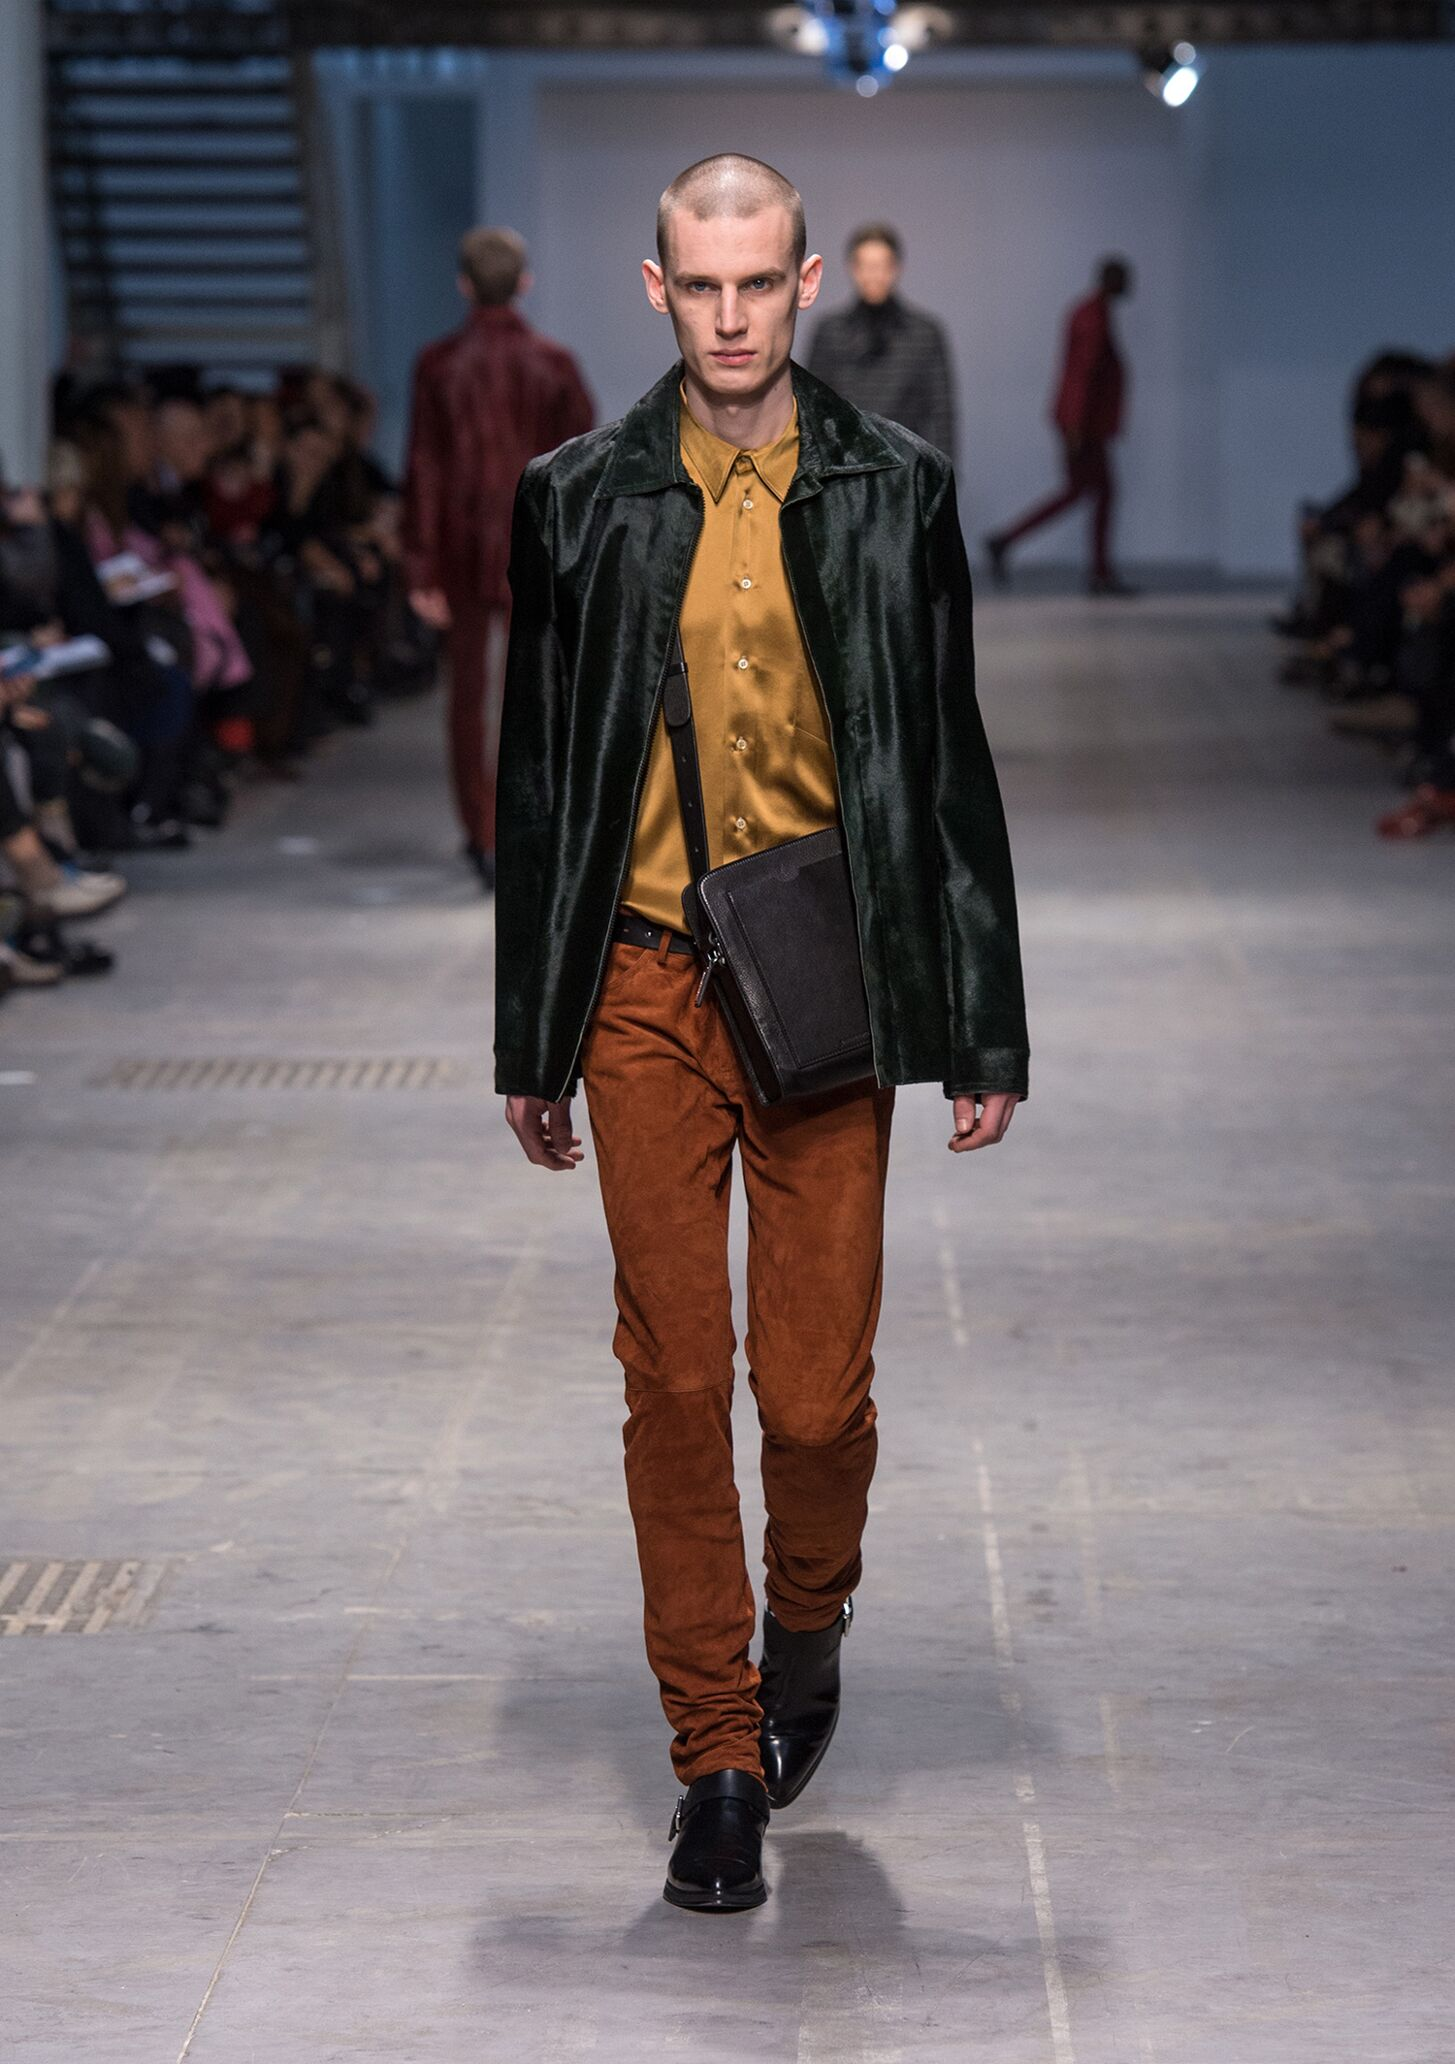 Fall Costume National Homme Fashion Man